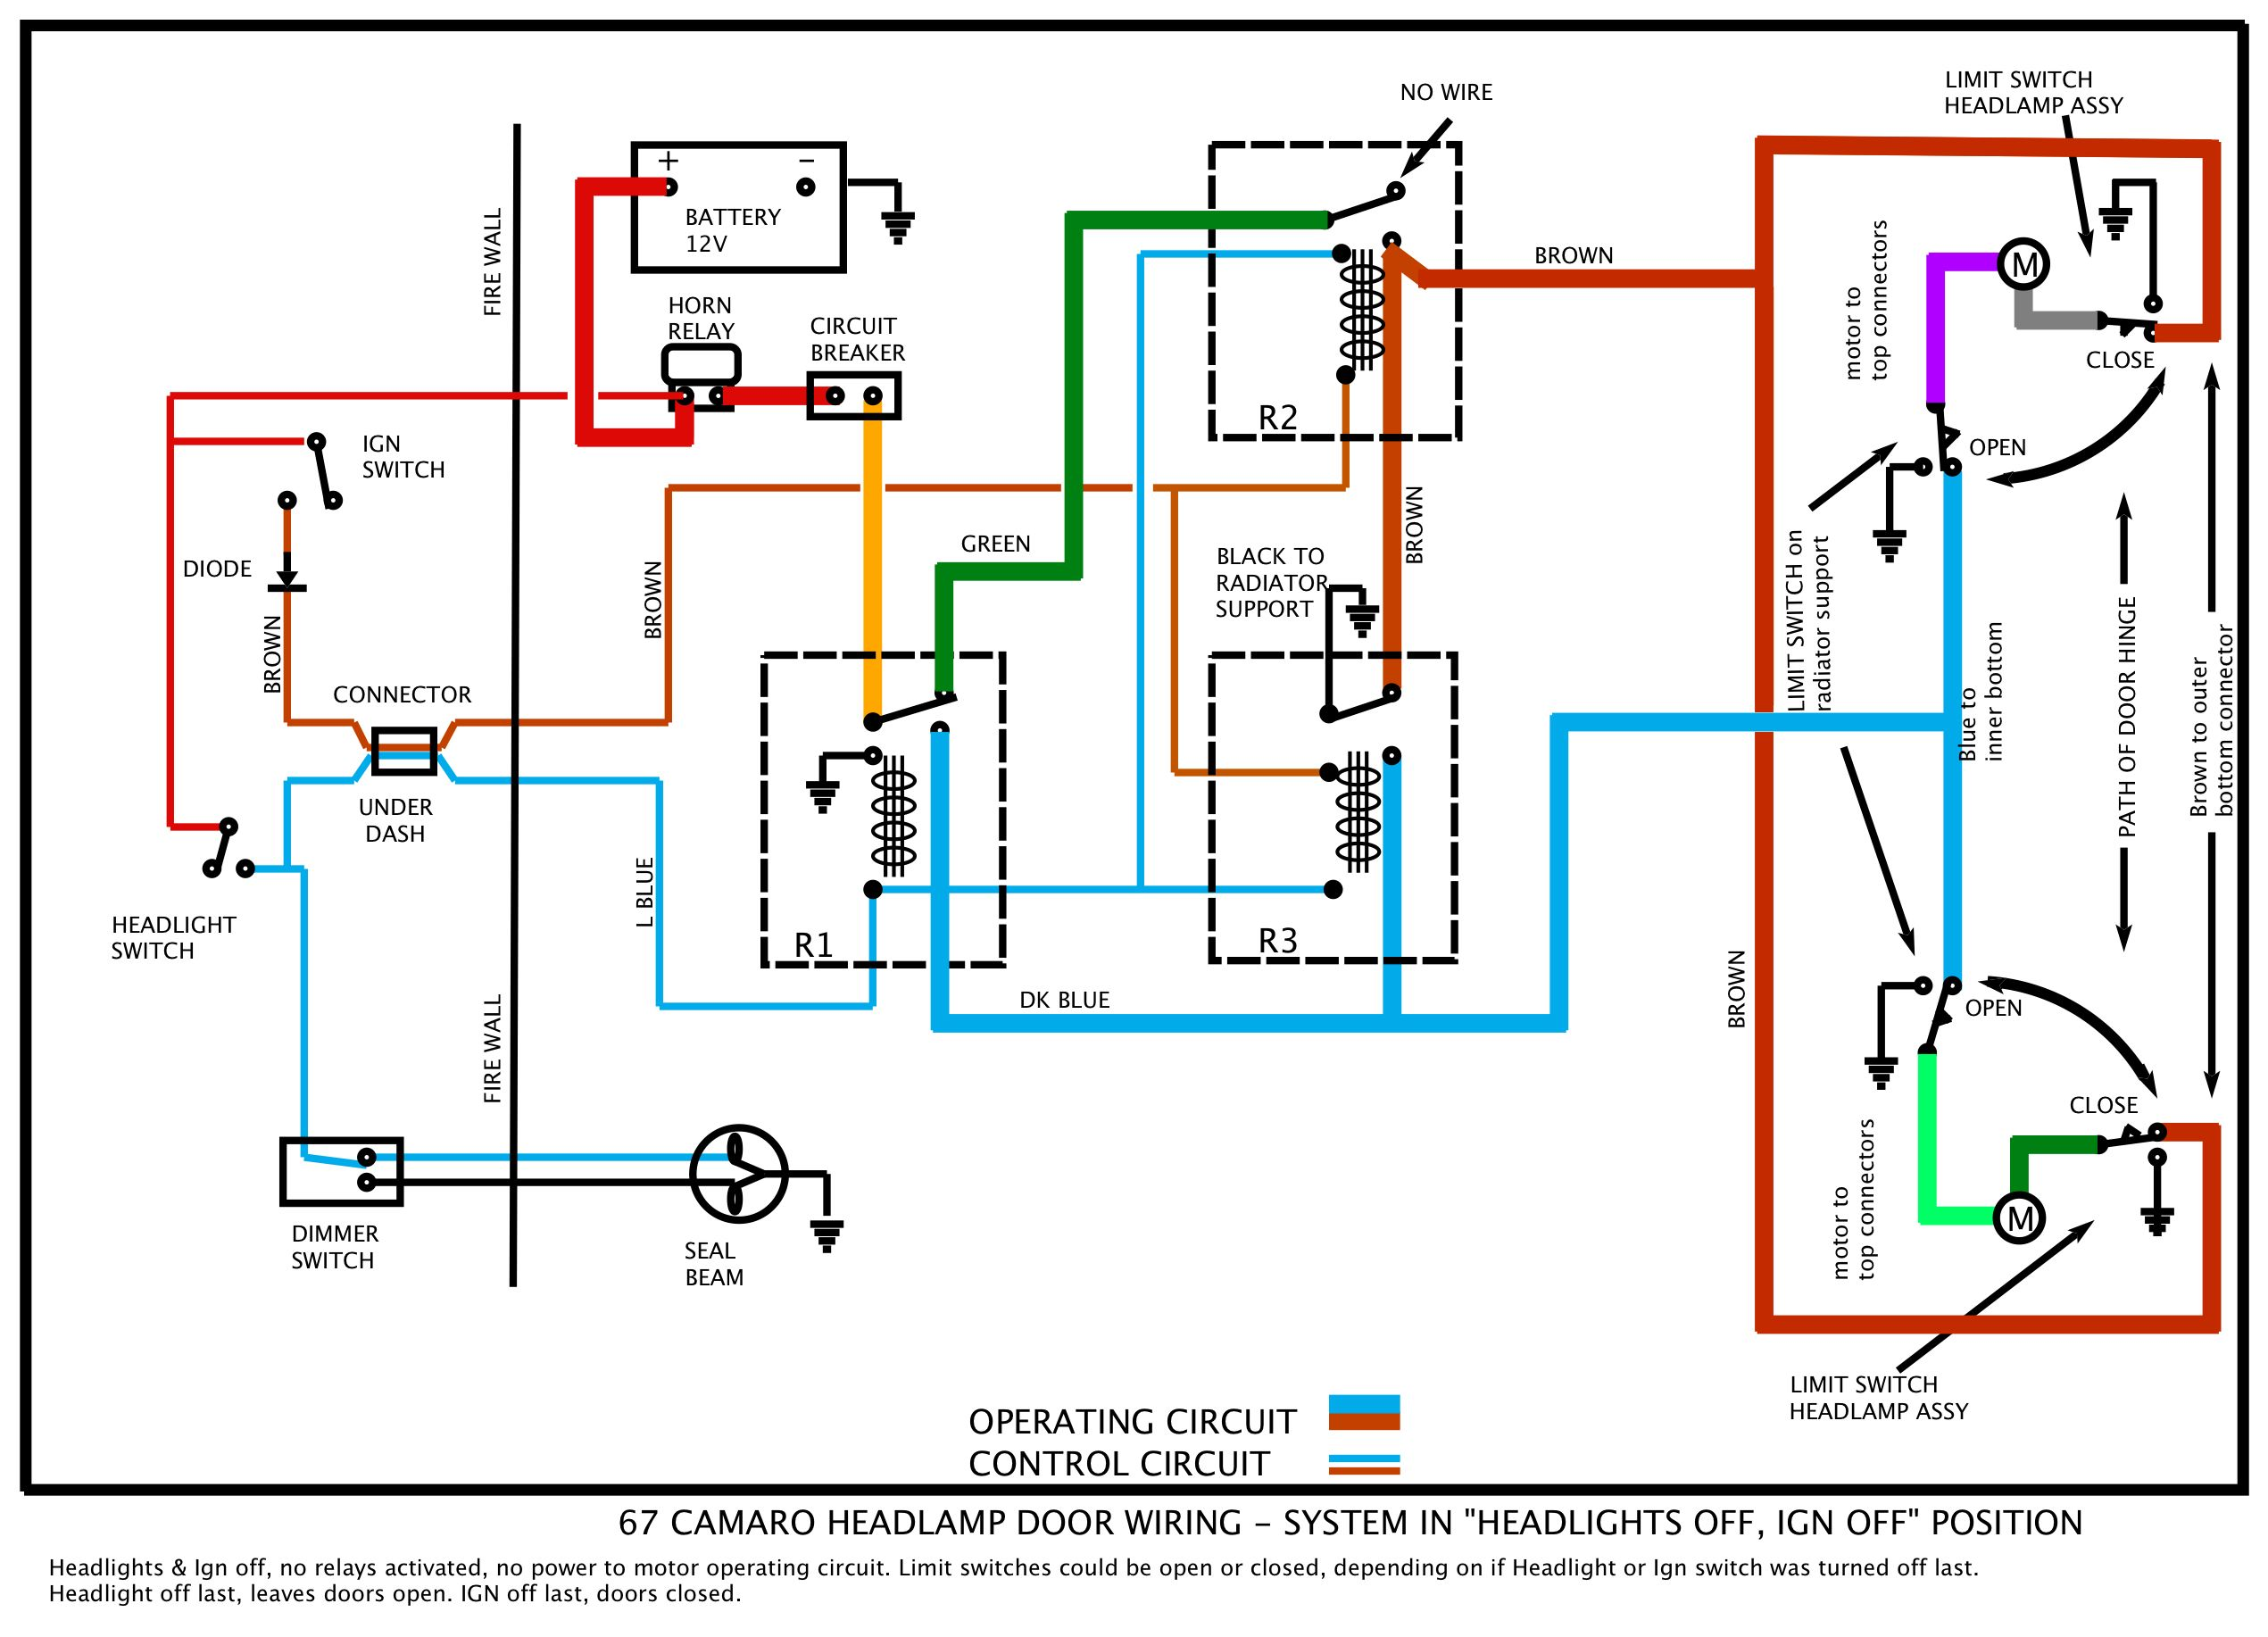 67_RS_HL_off_ign_off hl 220 motor wiring diagram 230v single phase wiring diagram, 220 swimming pool wiring diagram at gsmx.co